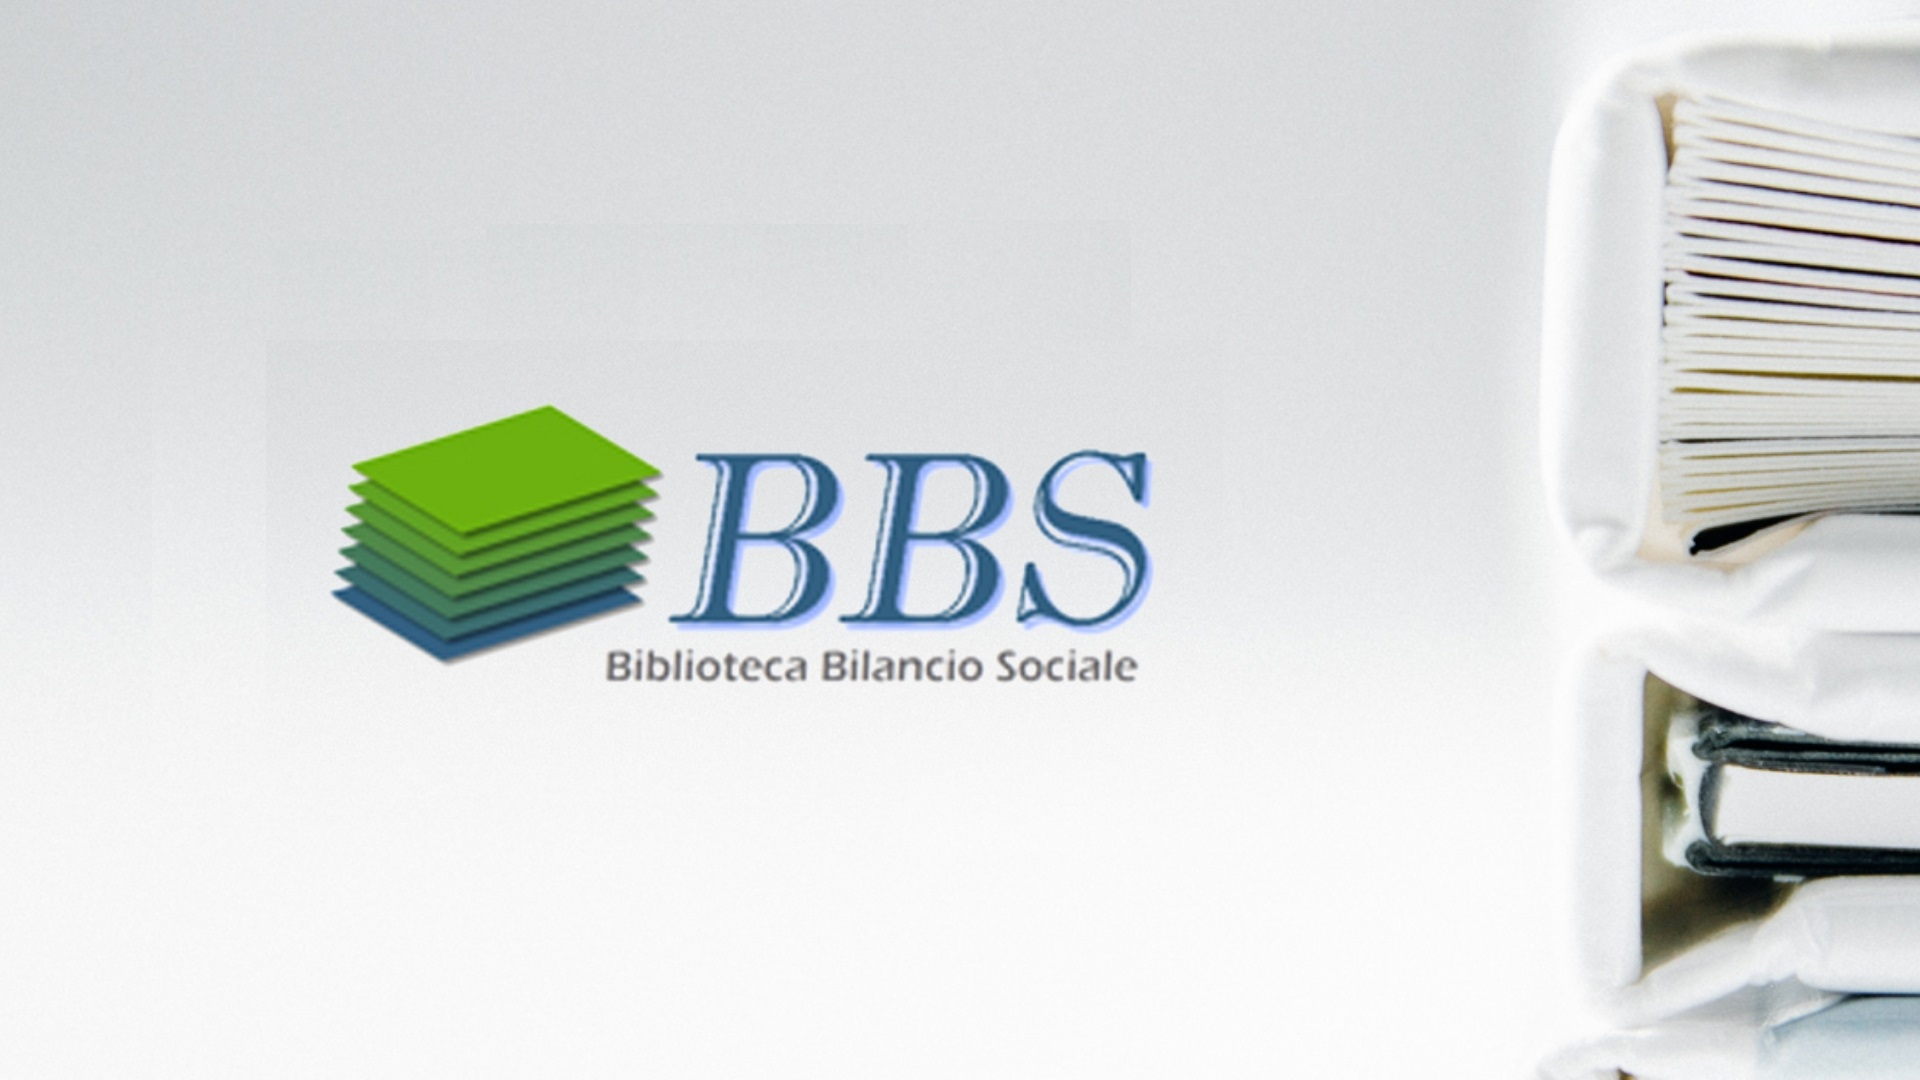 Engineering receives the Special Award for Social Committment from BBS - Biblioteca Bilancio Sociale